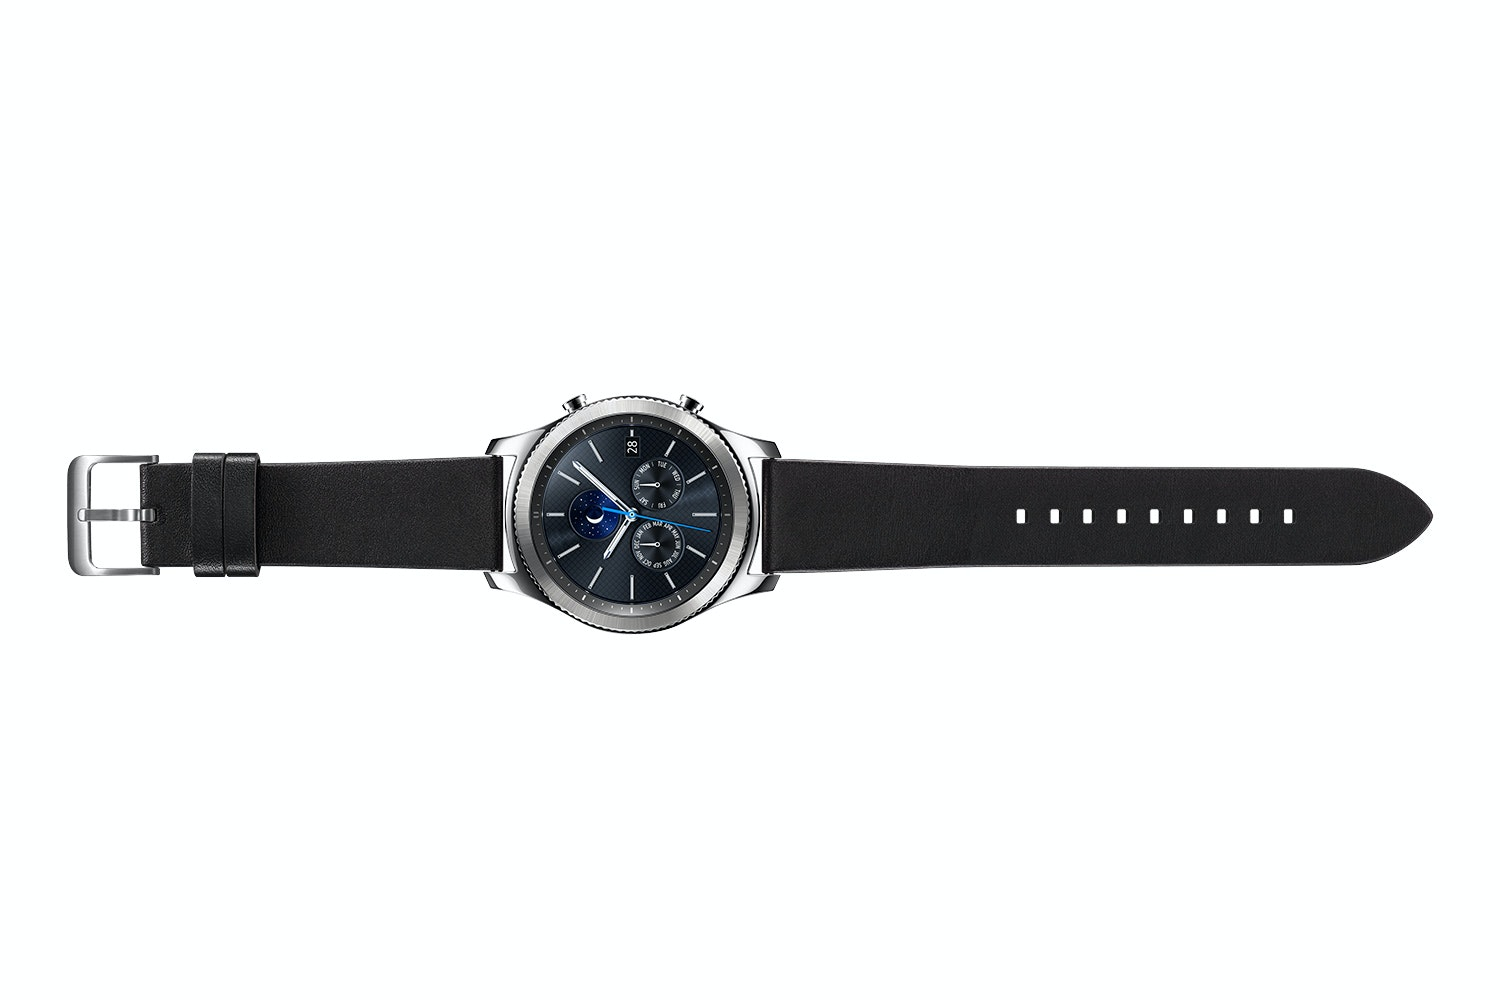 Samsung Gear S3 | Classic